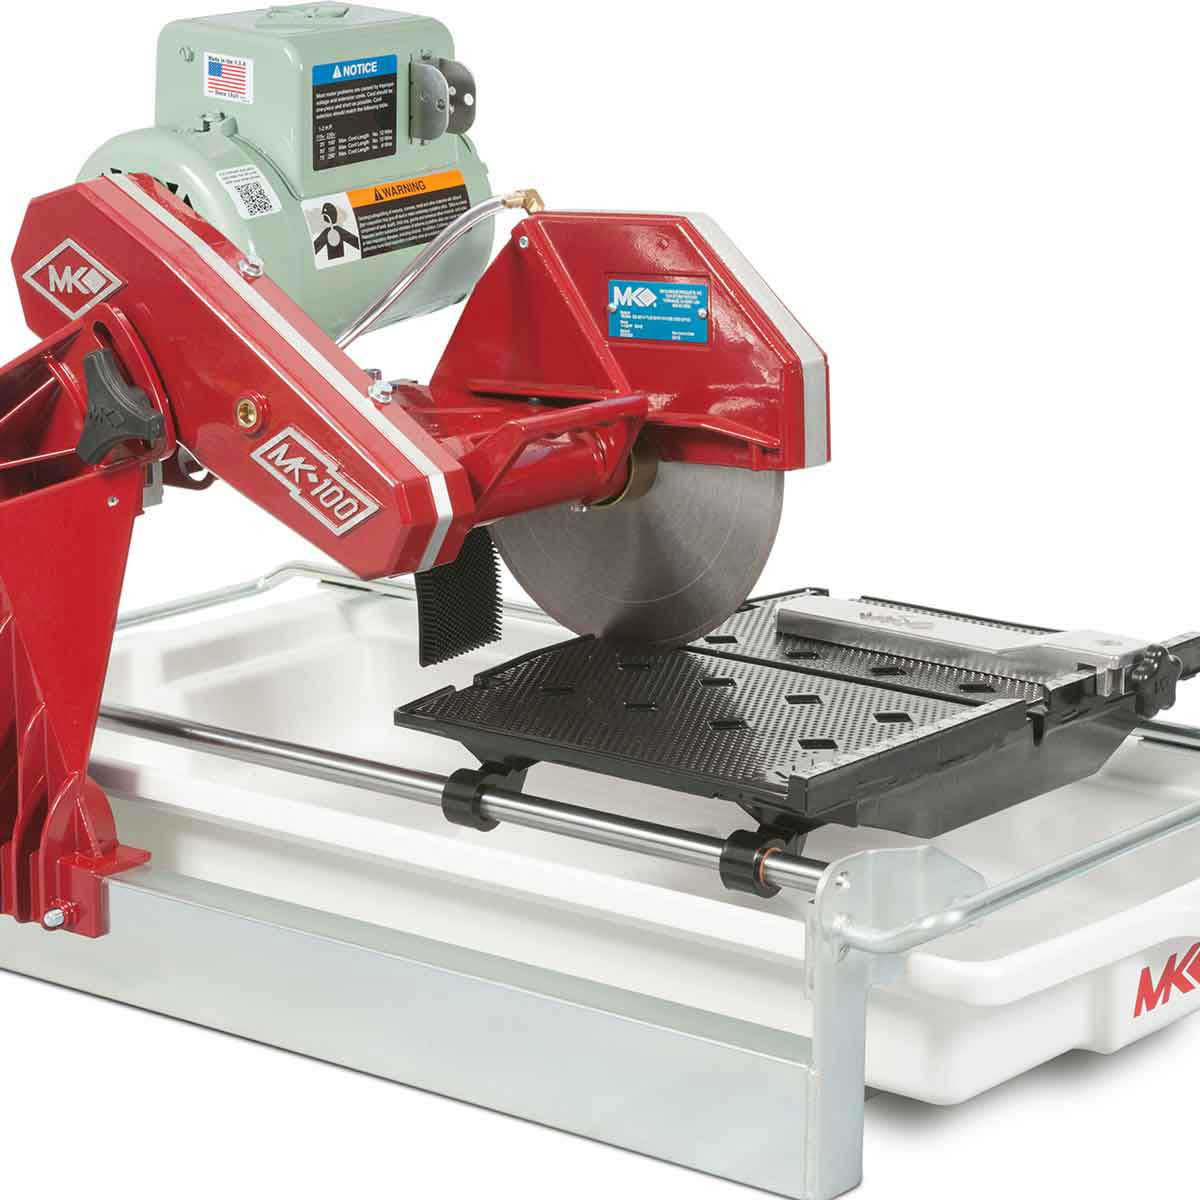 MK-100 Wet Tile Saw cutting table with rip guide